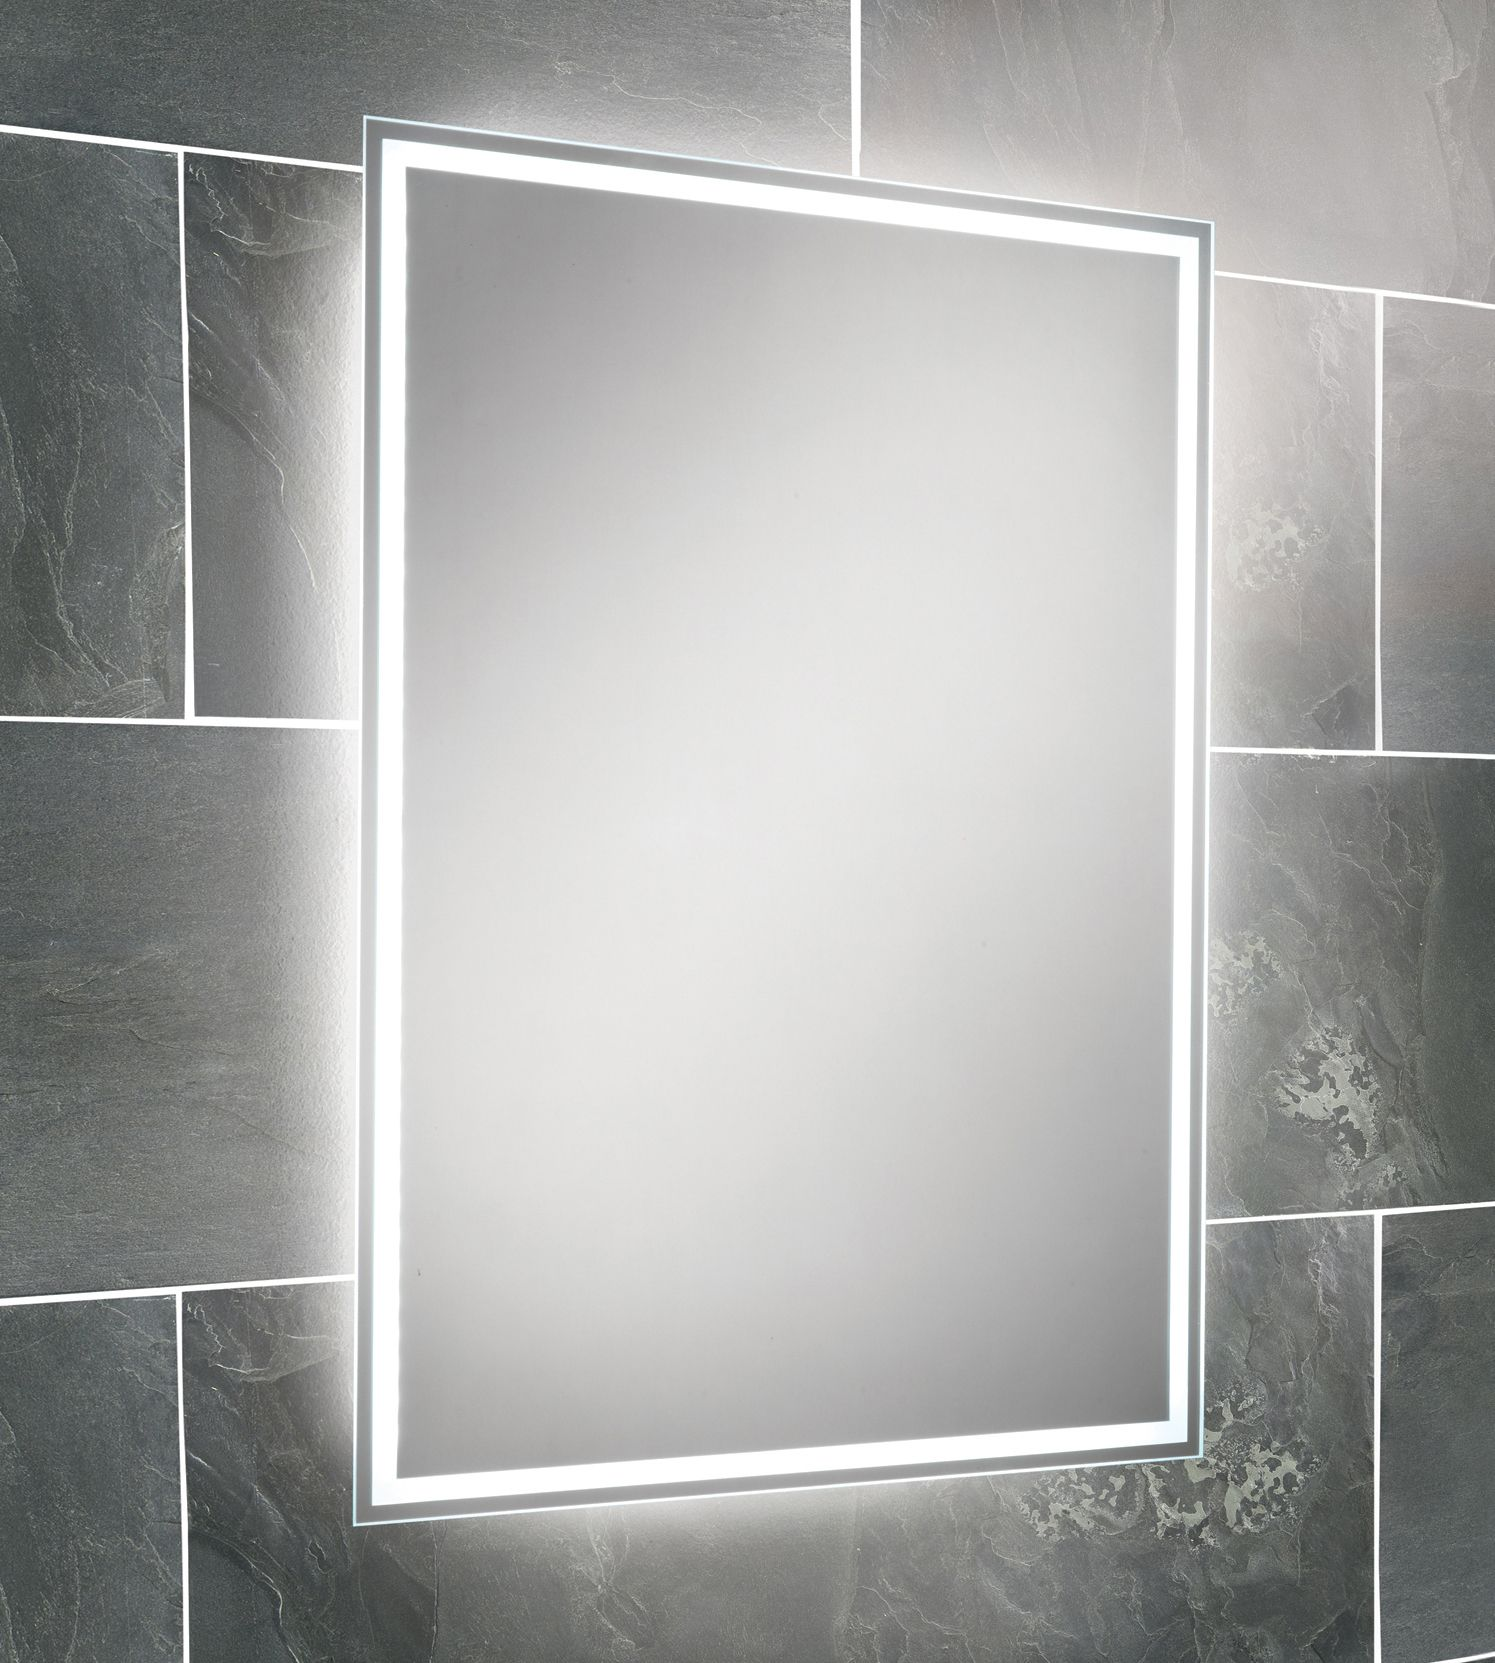 hib ella steam free led back-lit bathroom mirror 700 x 500mm